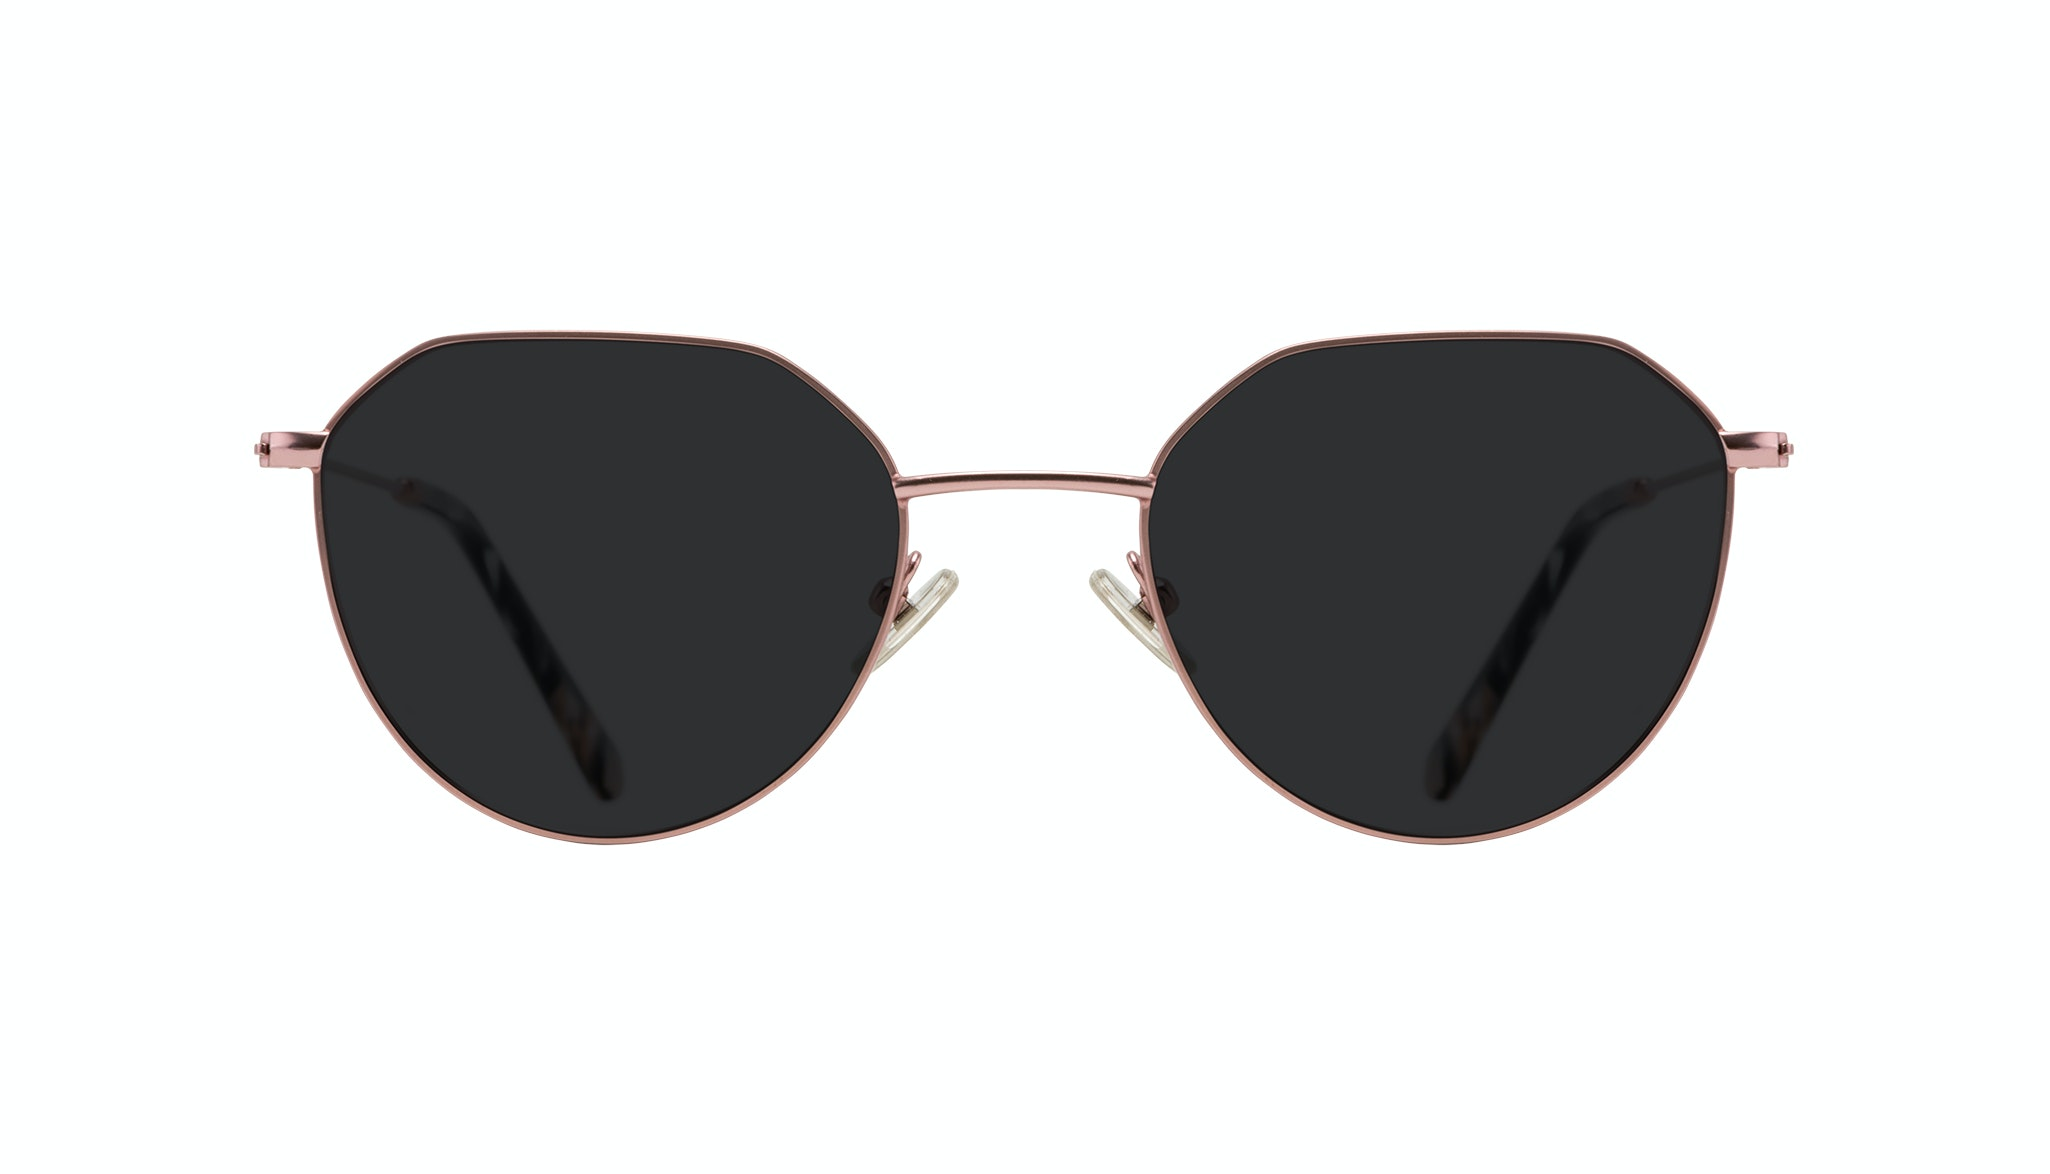 Affordable Fashion Glasses Round Sunglasses Women Prism Blush Front